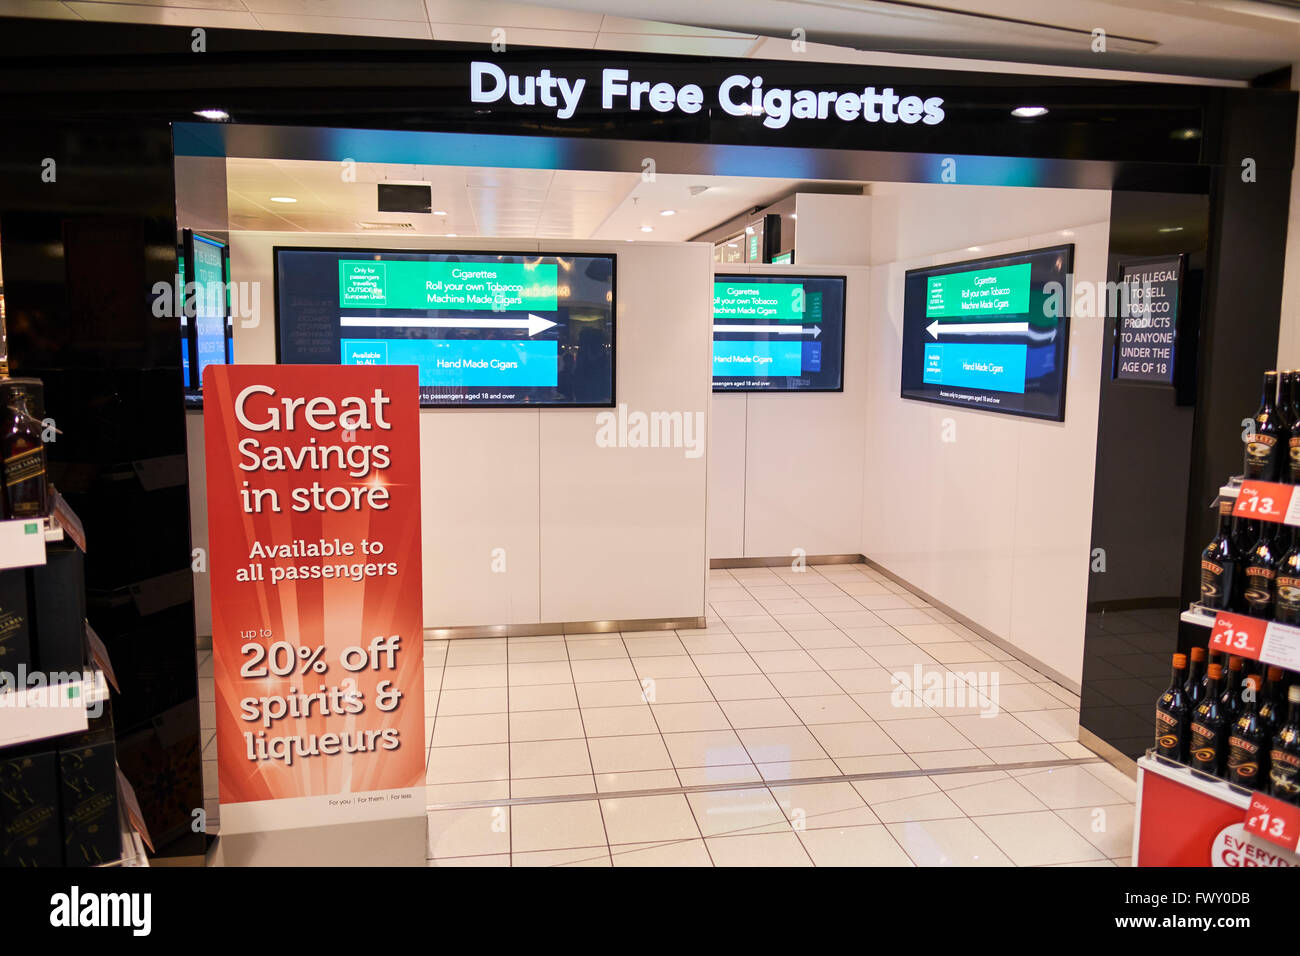 How much do cigarettes cost in London